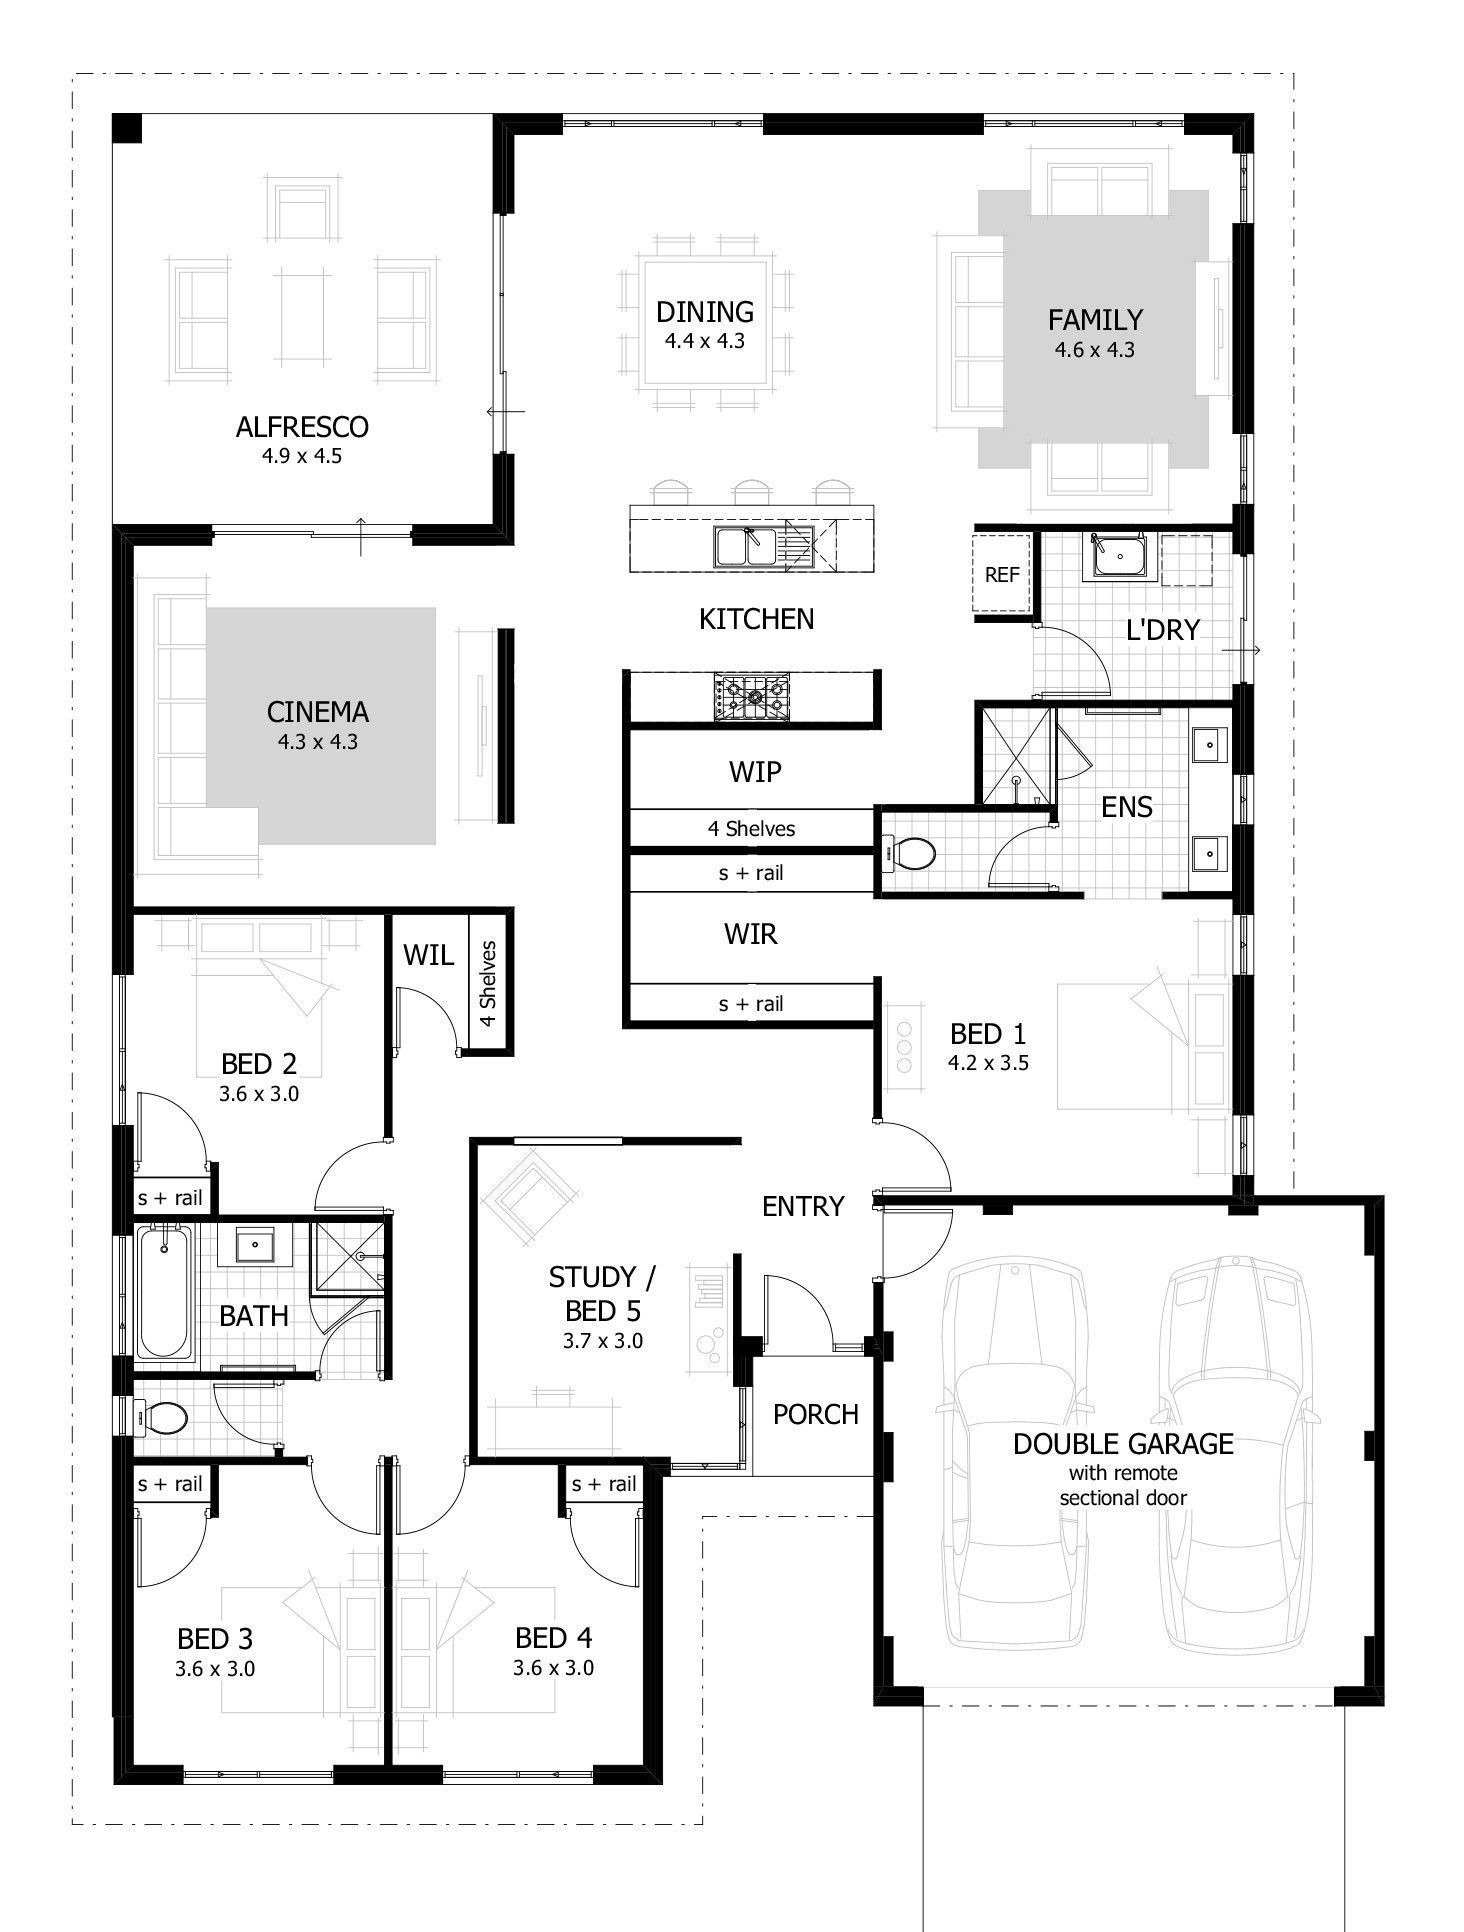 3d House Plans software Free Download Awesome House Plans 3d S New Free Home Plan Design software Download